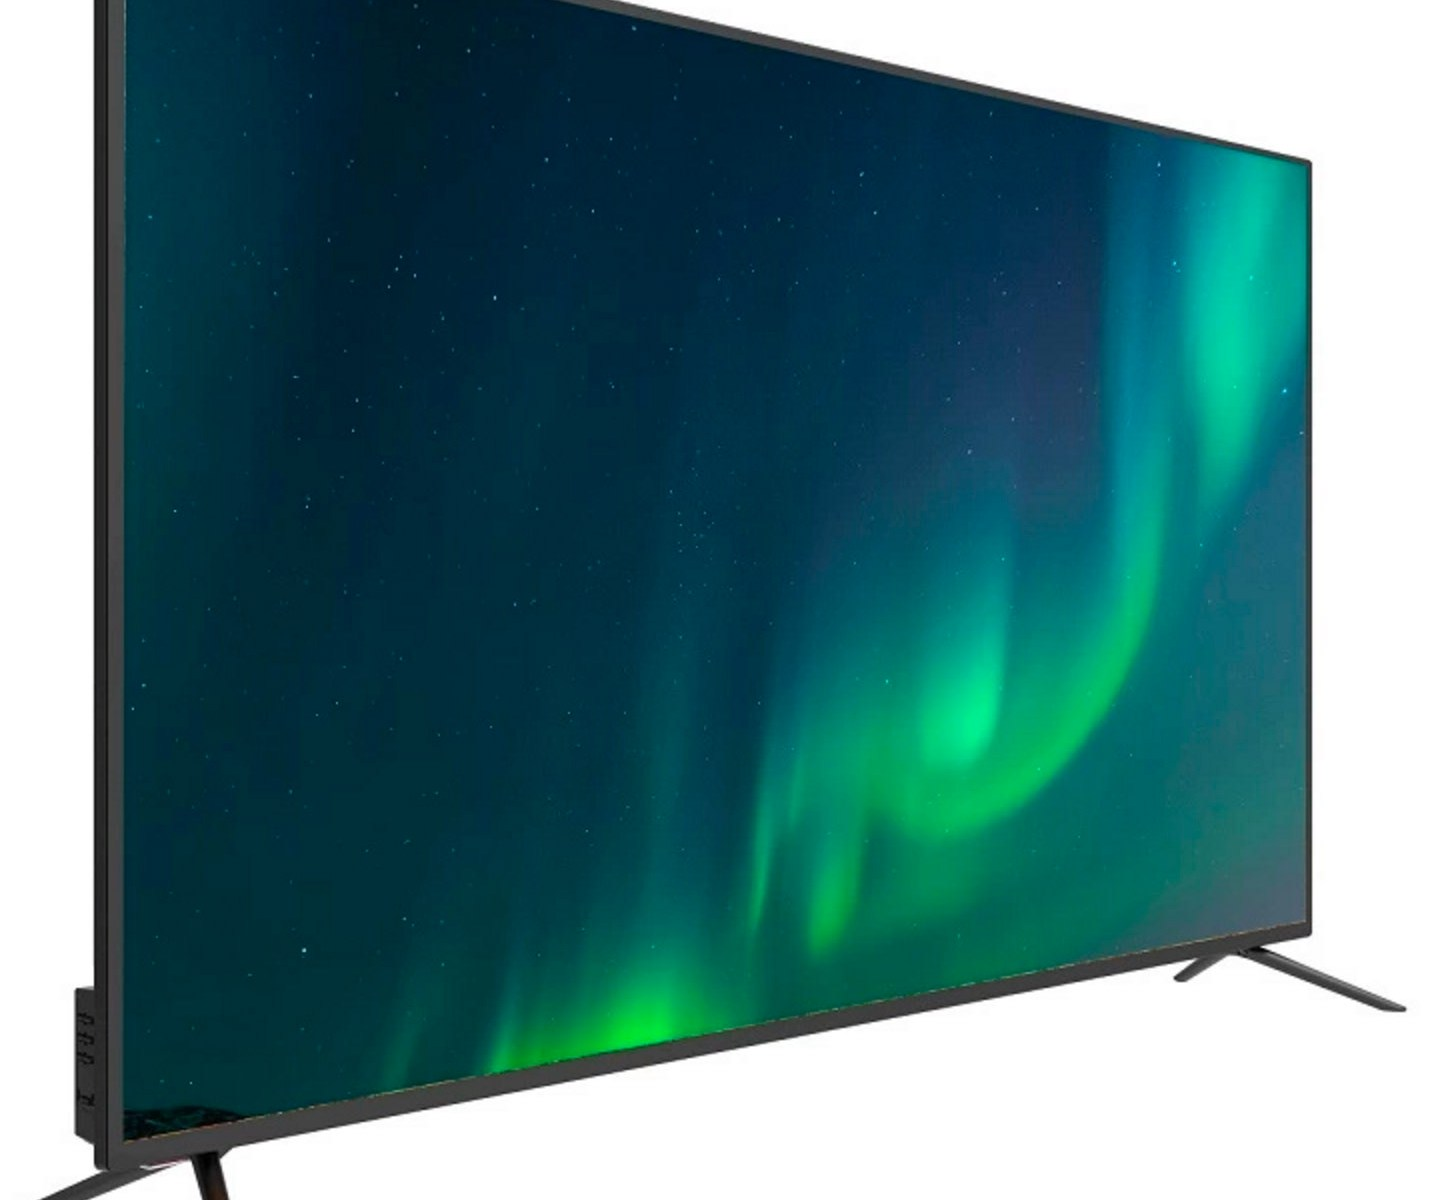 Sparc 4K LED TV Philippines Review: Reasons to NOT buy it